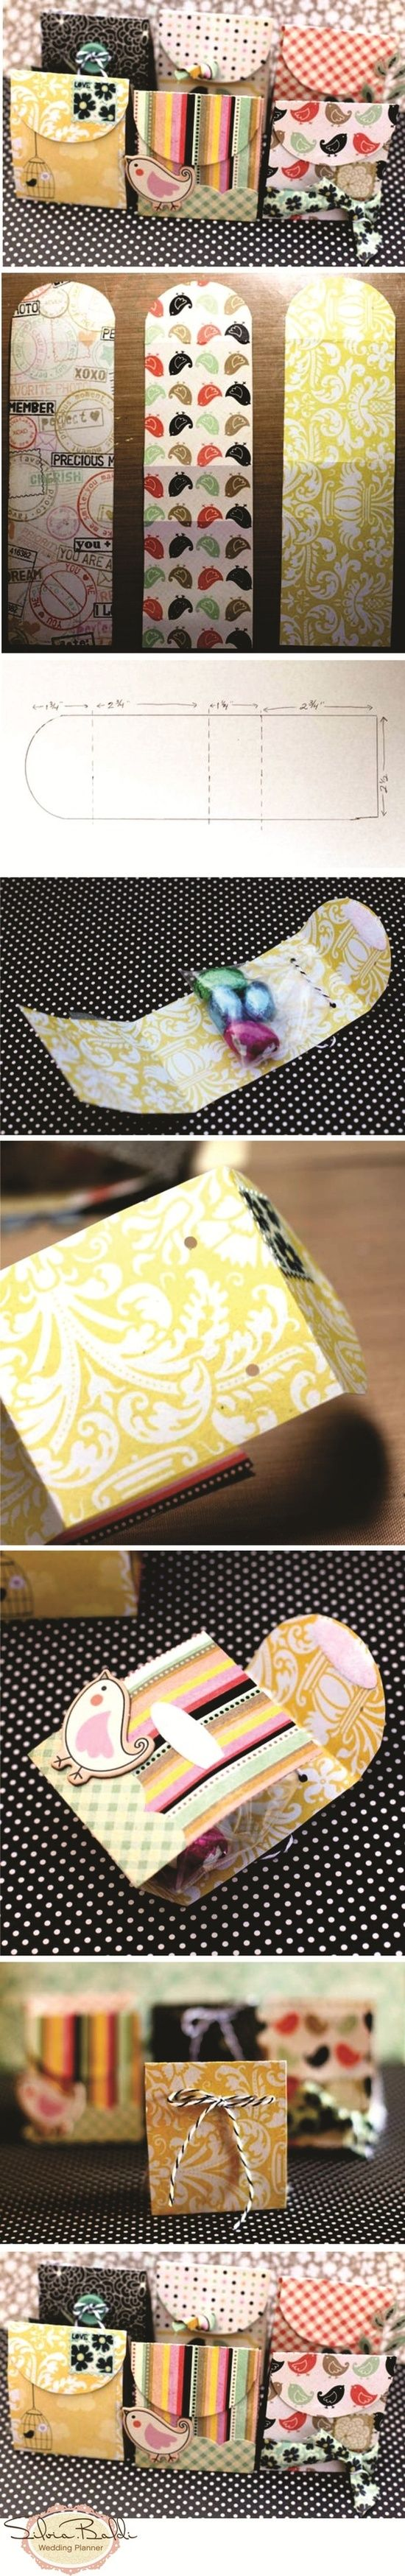 DIY gift boxes with Hersey kisses with stickers on bottom - Could modify this template for your favors